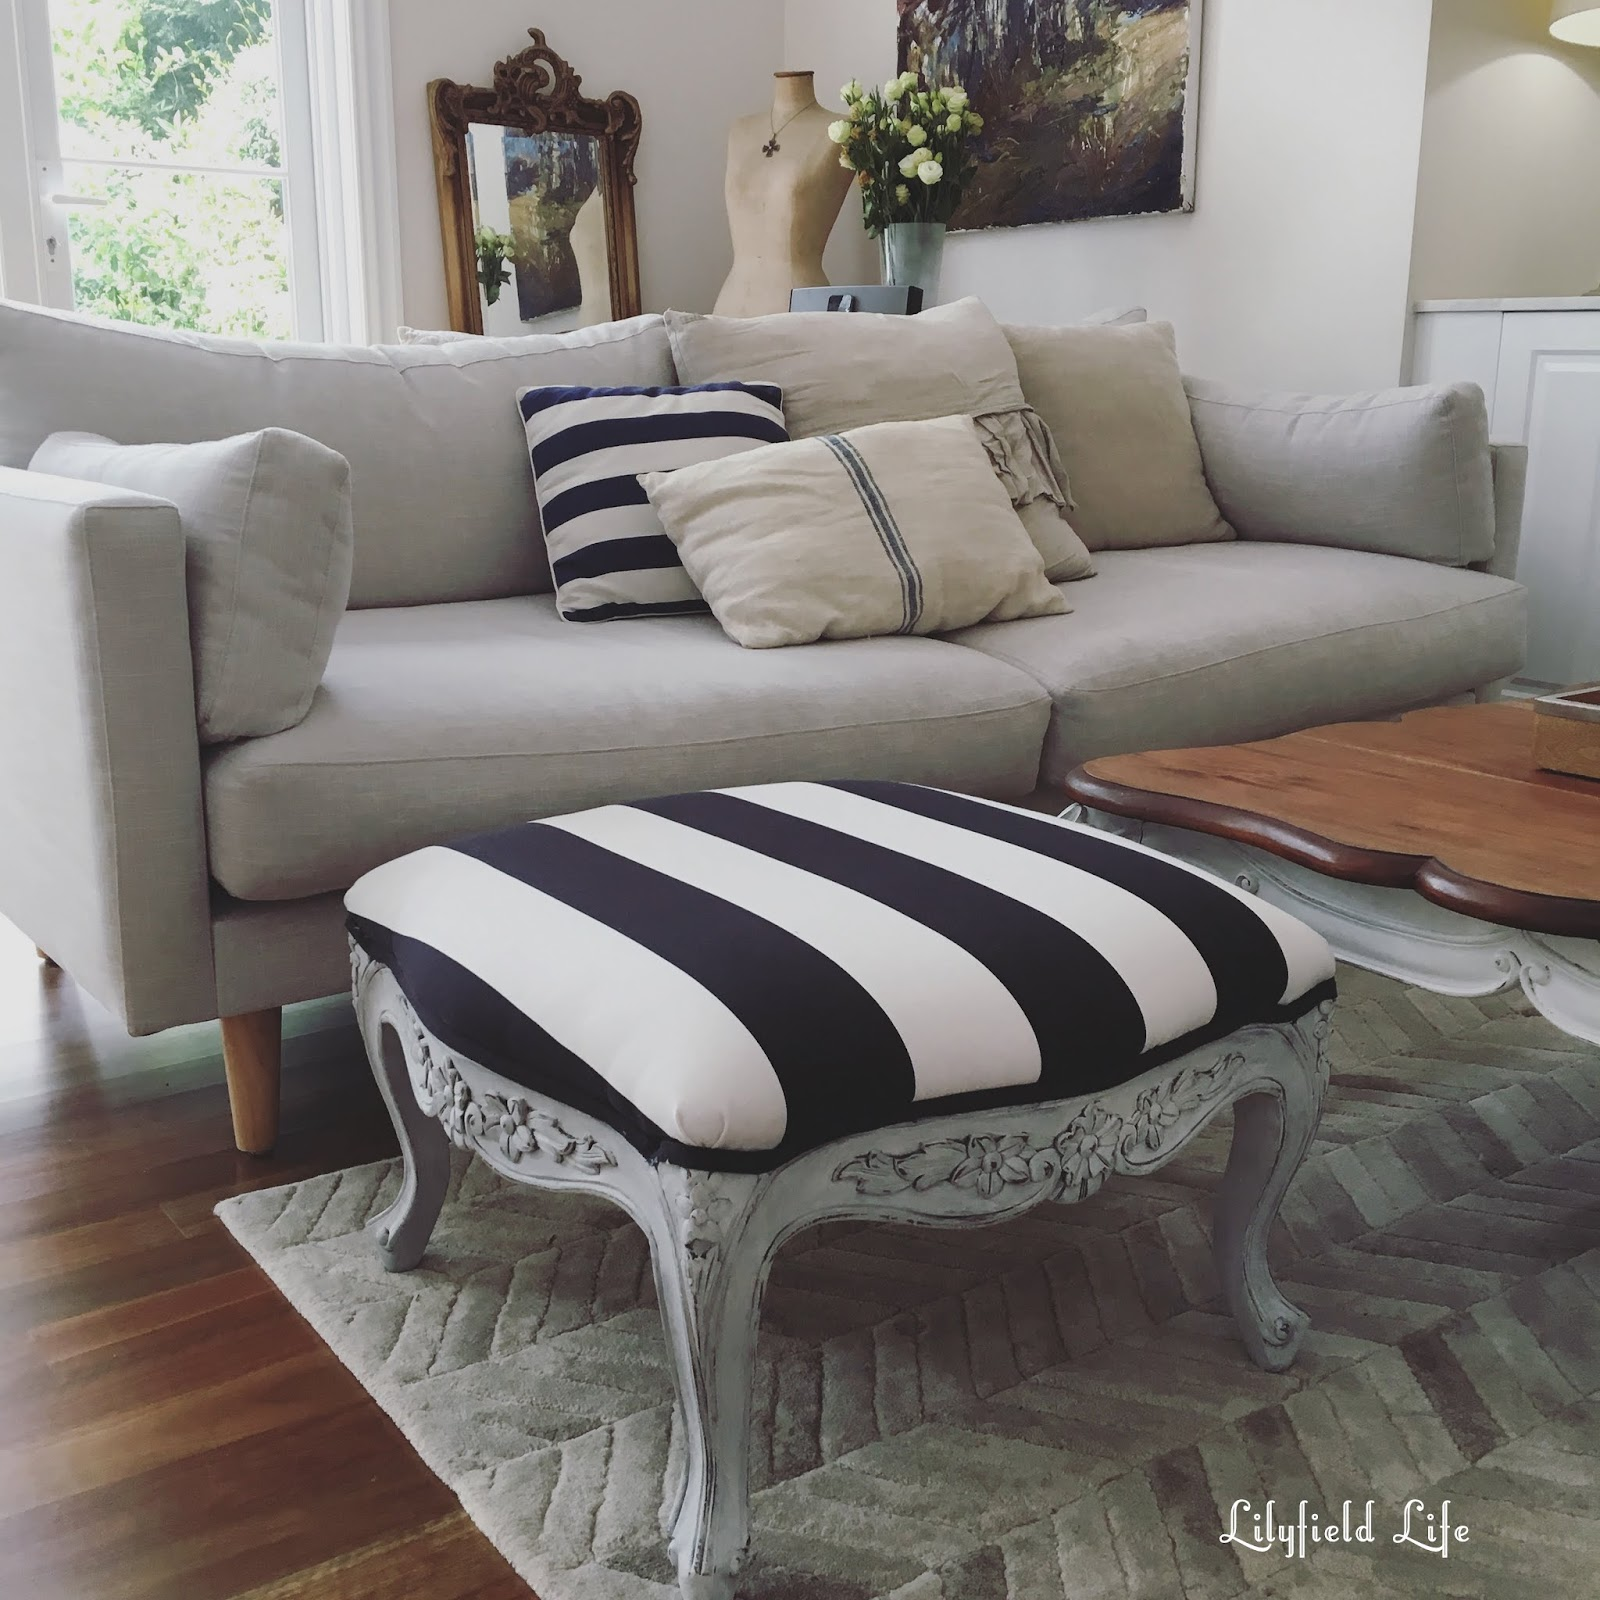 Awesome using the IKEA Sofia fabric for upholstery Lilyfield Life